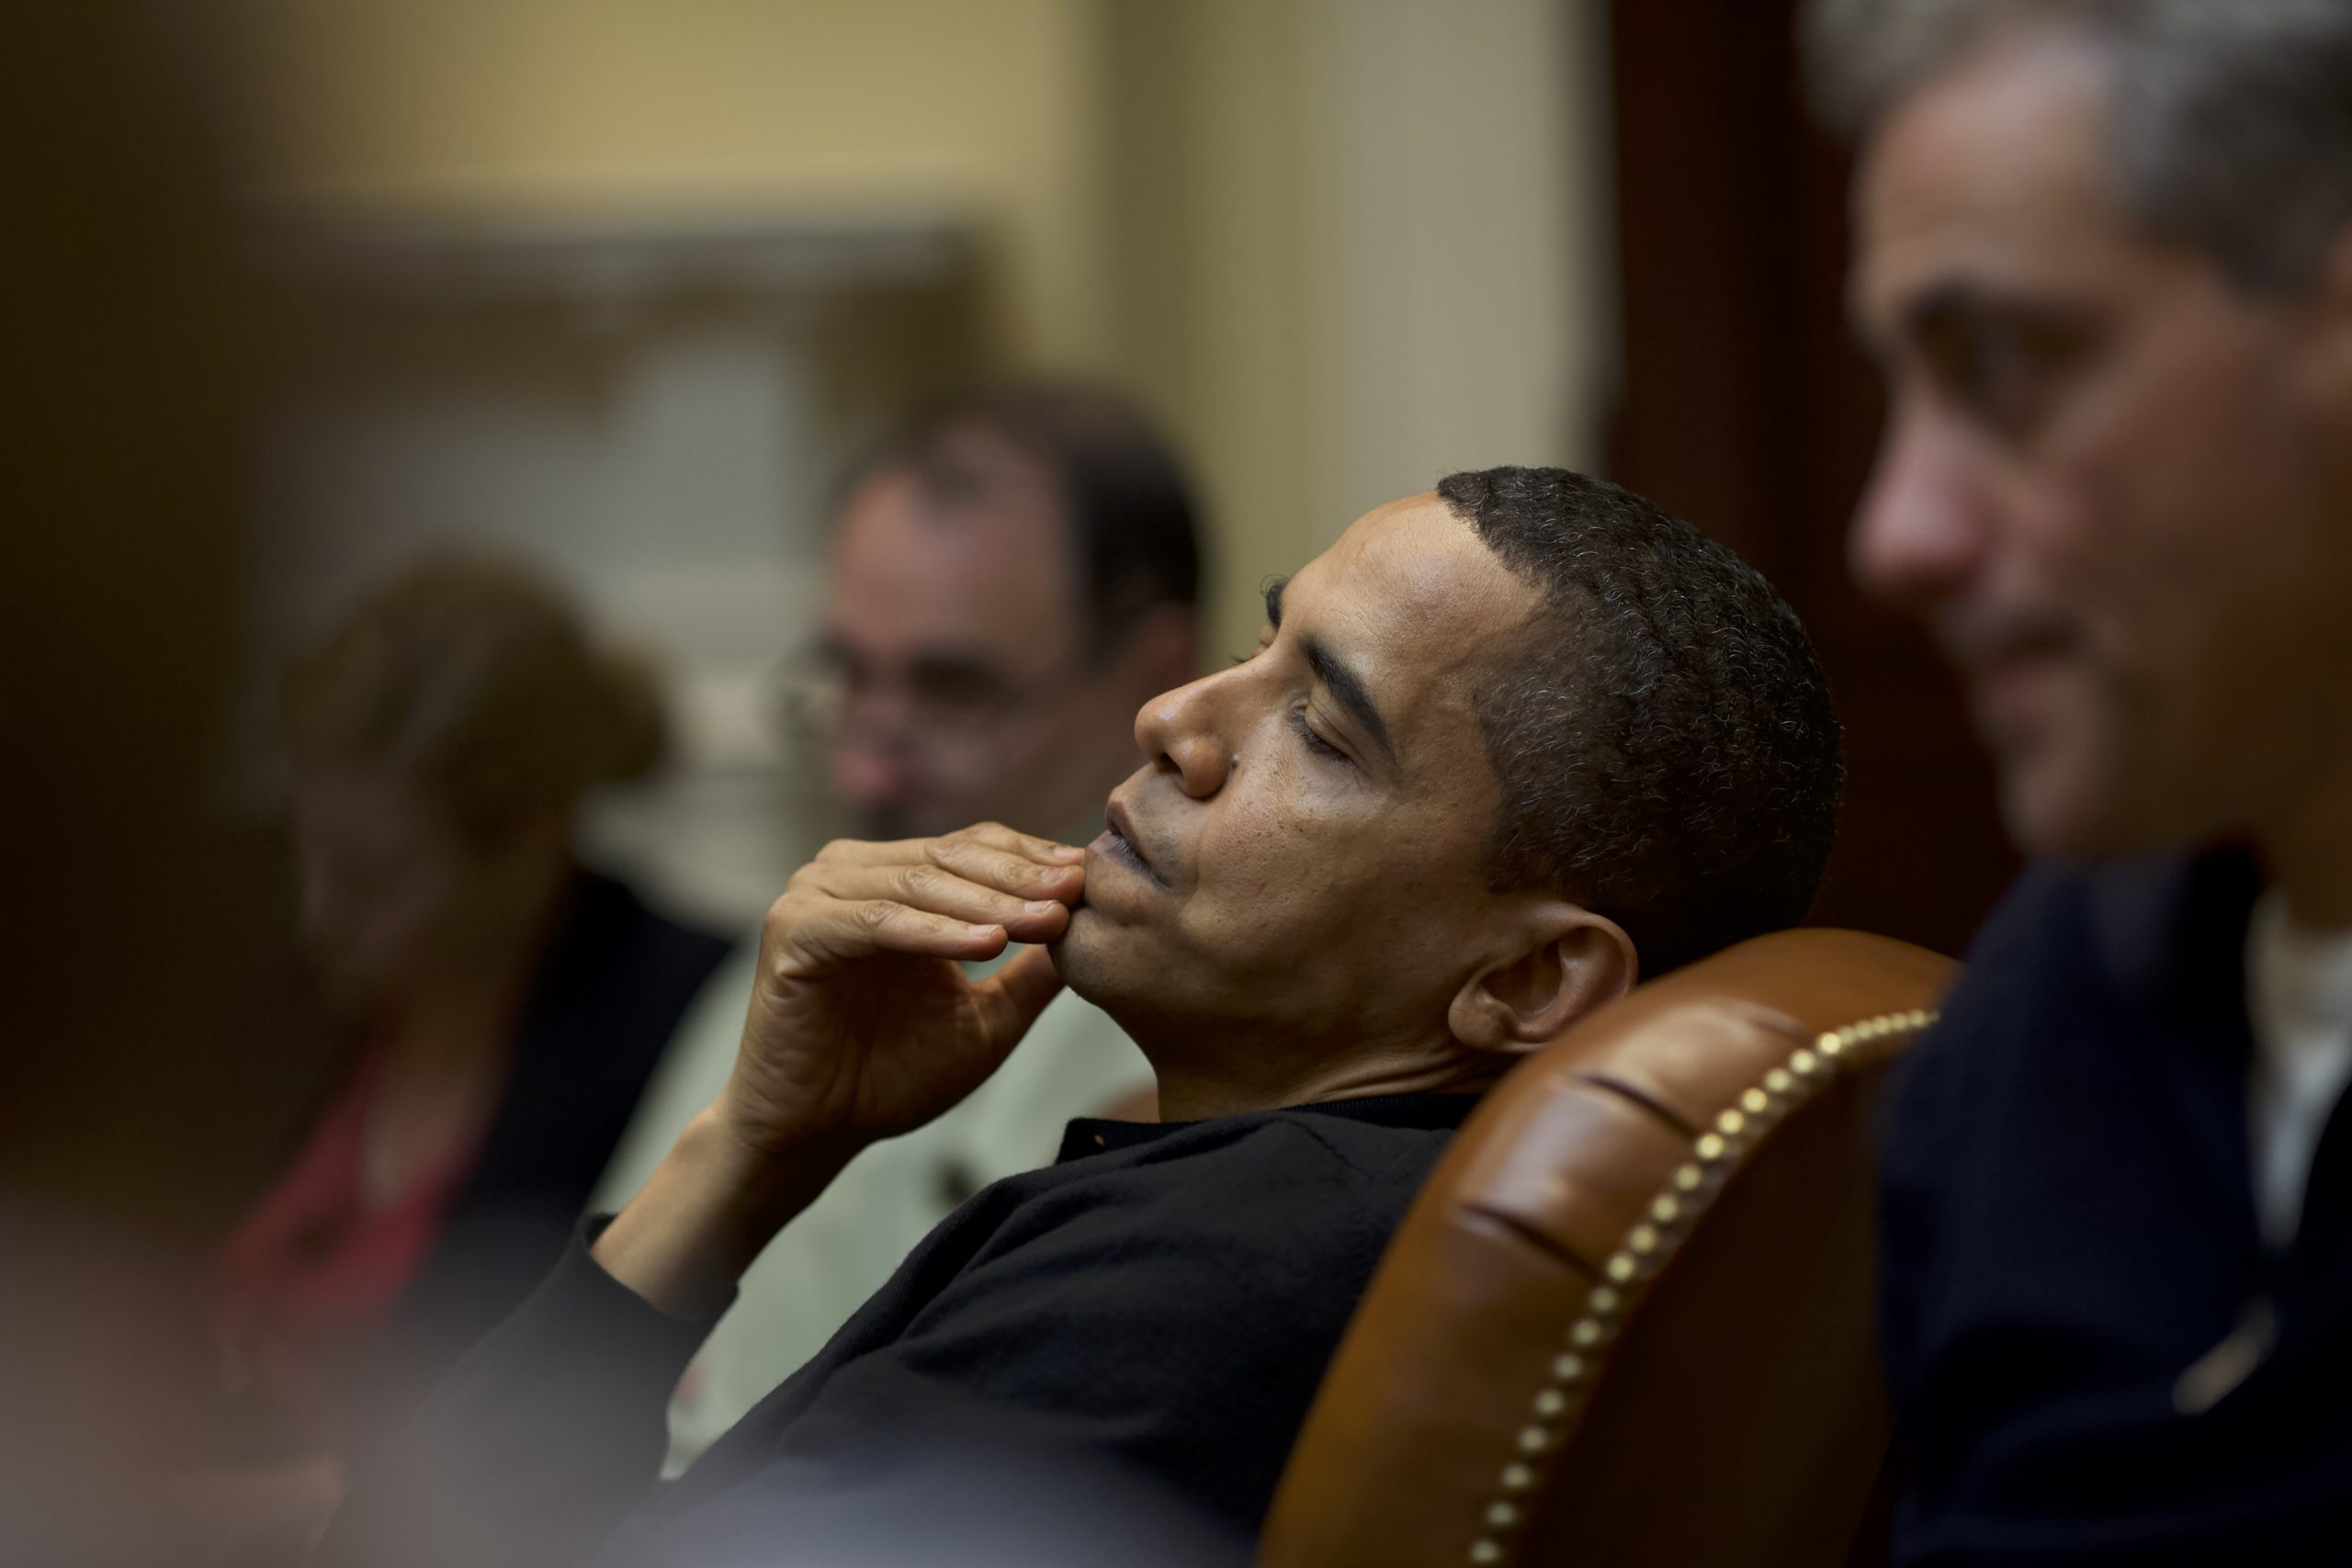 President Obama leans back in his chair with a hand resting on his chin.